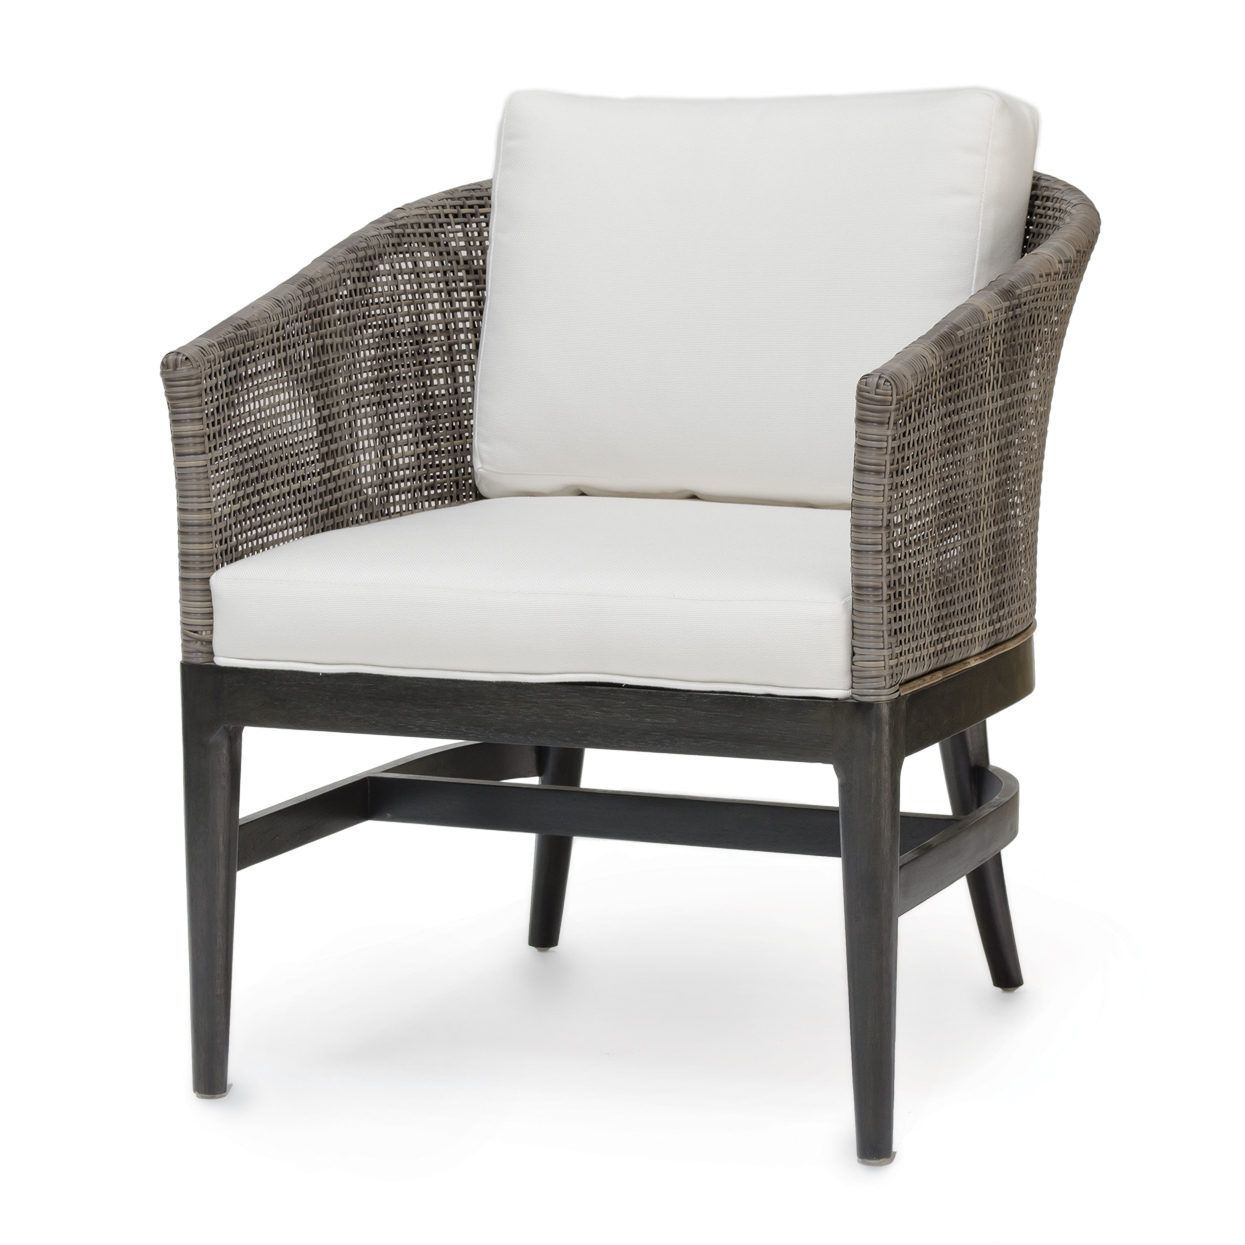 FP Lounge VINCENT OCCASIONAL CHAIR Outdoor dining